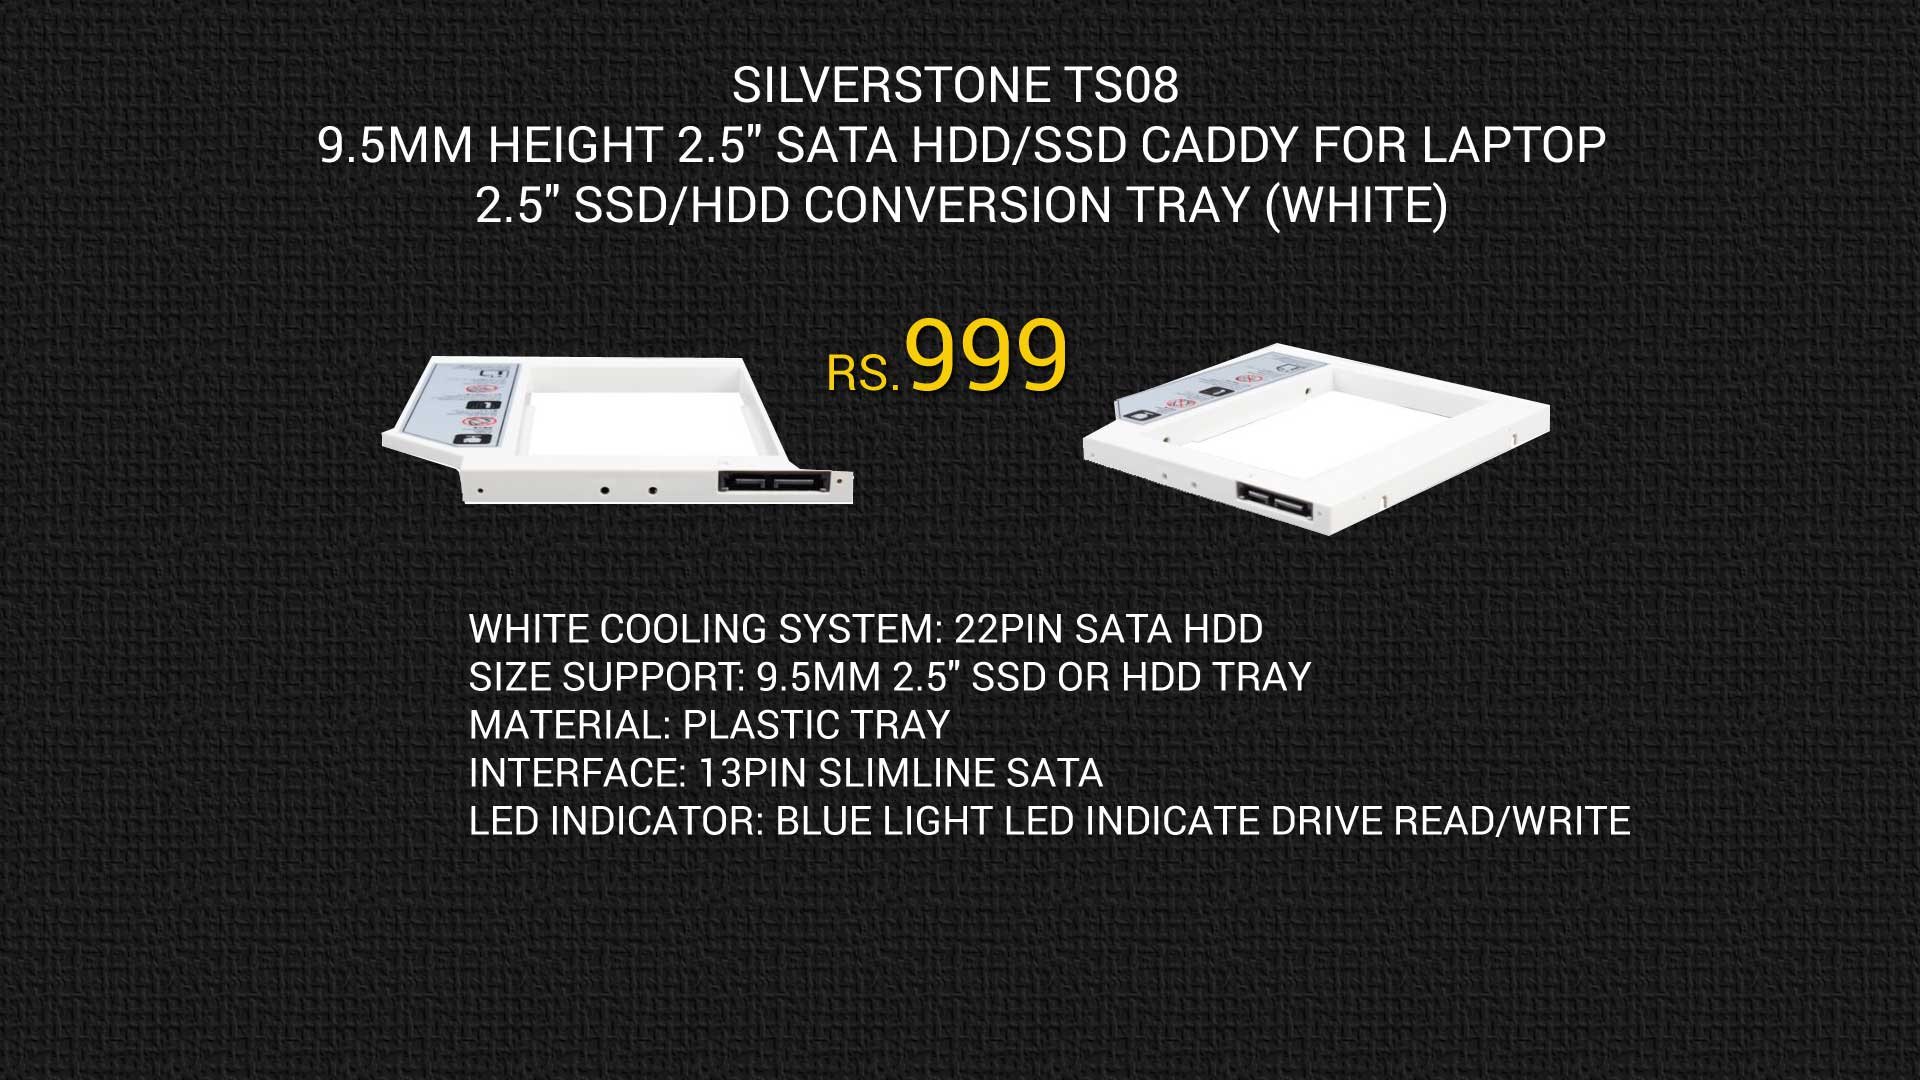 SilverStone-TS08-9.5mm-Height-2.5-SATA-HDD-SSD-Caddy-for-Laptop1-1